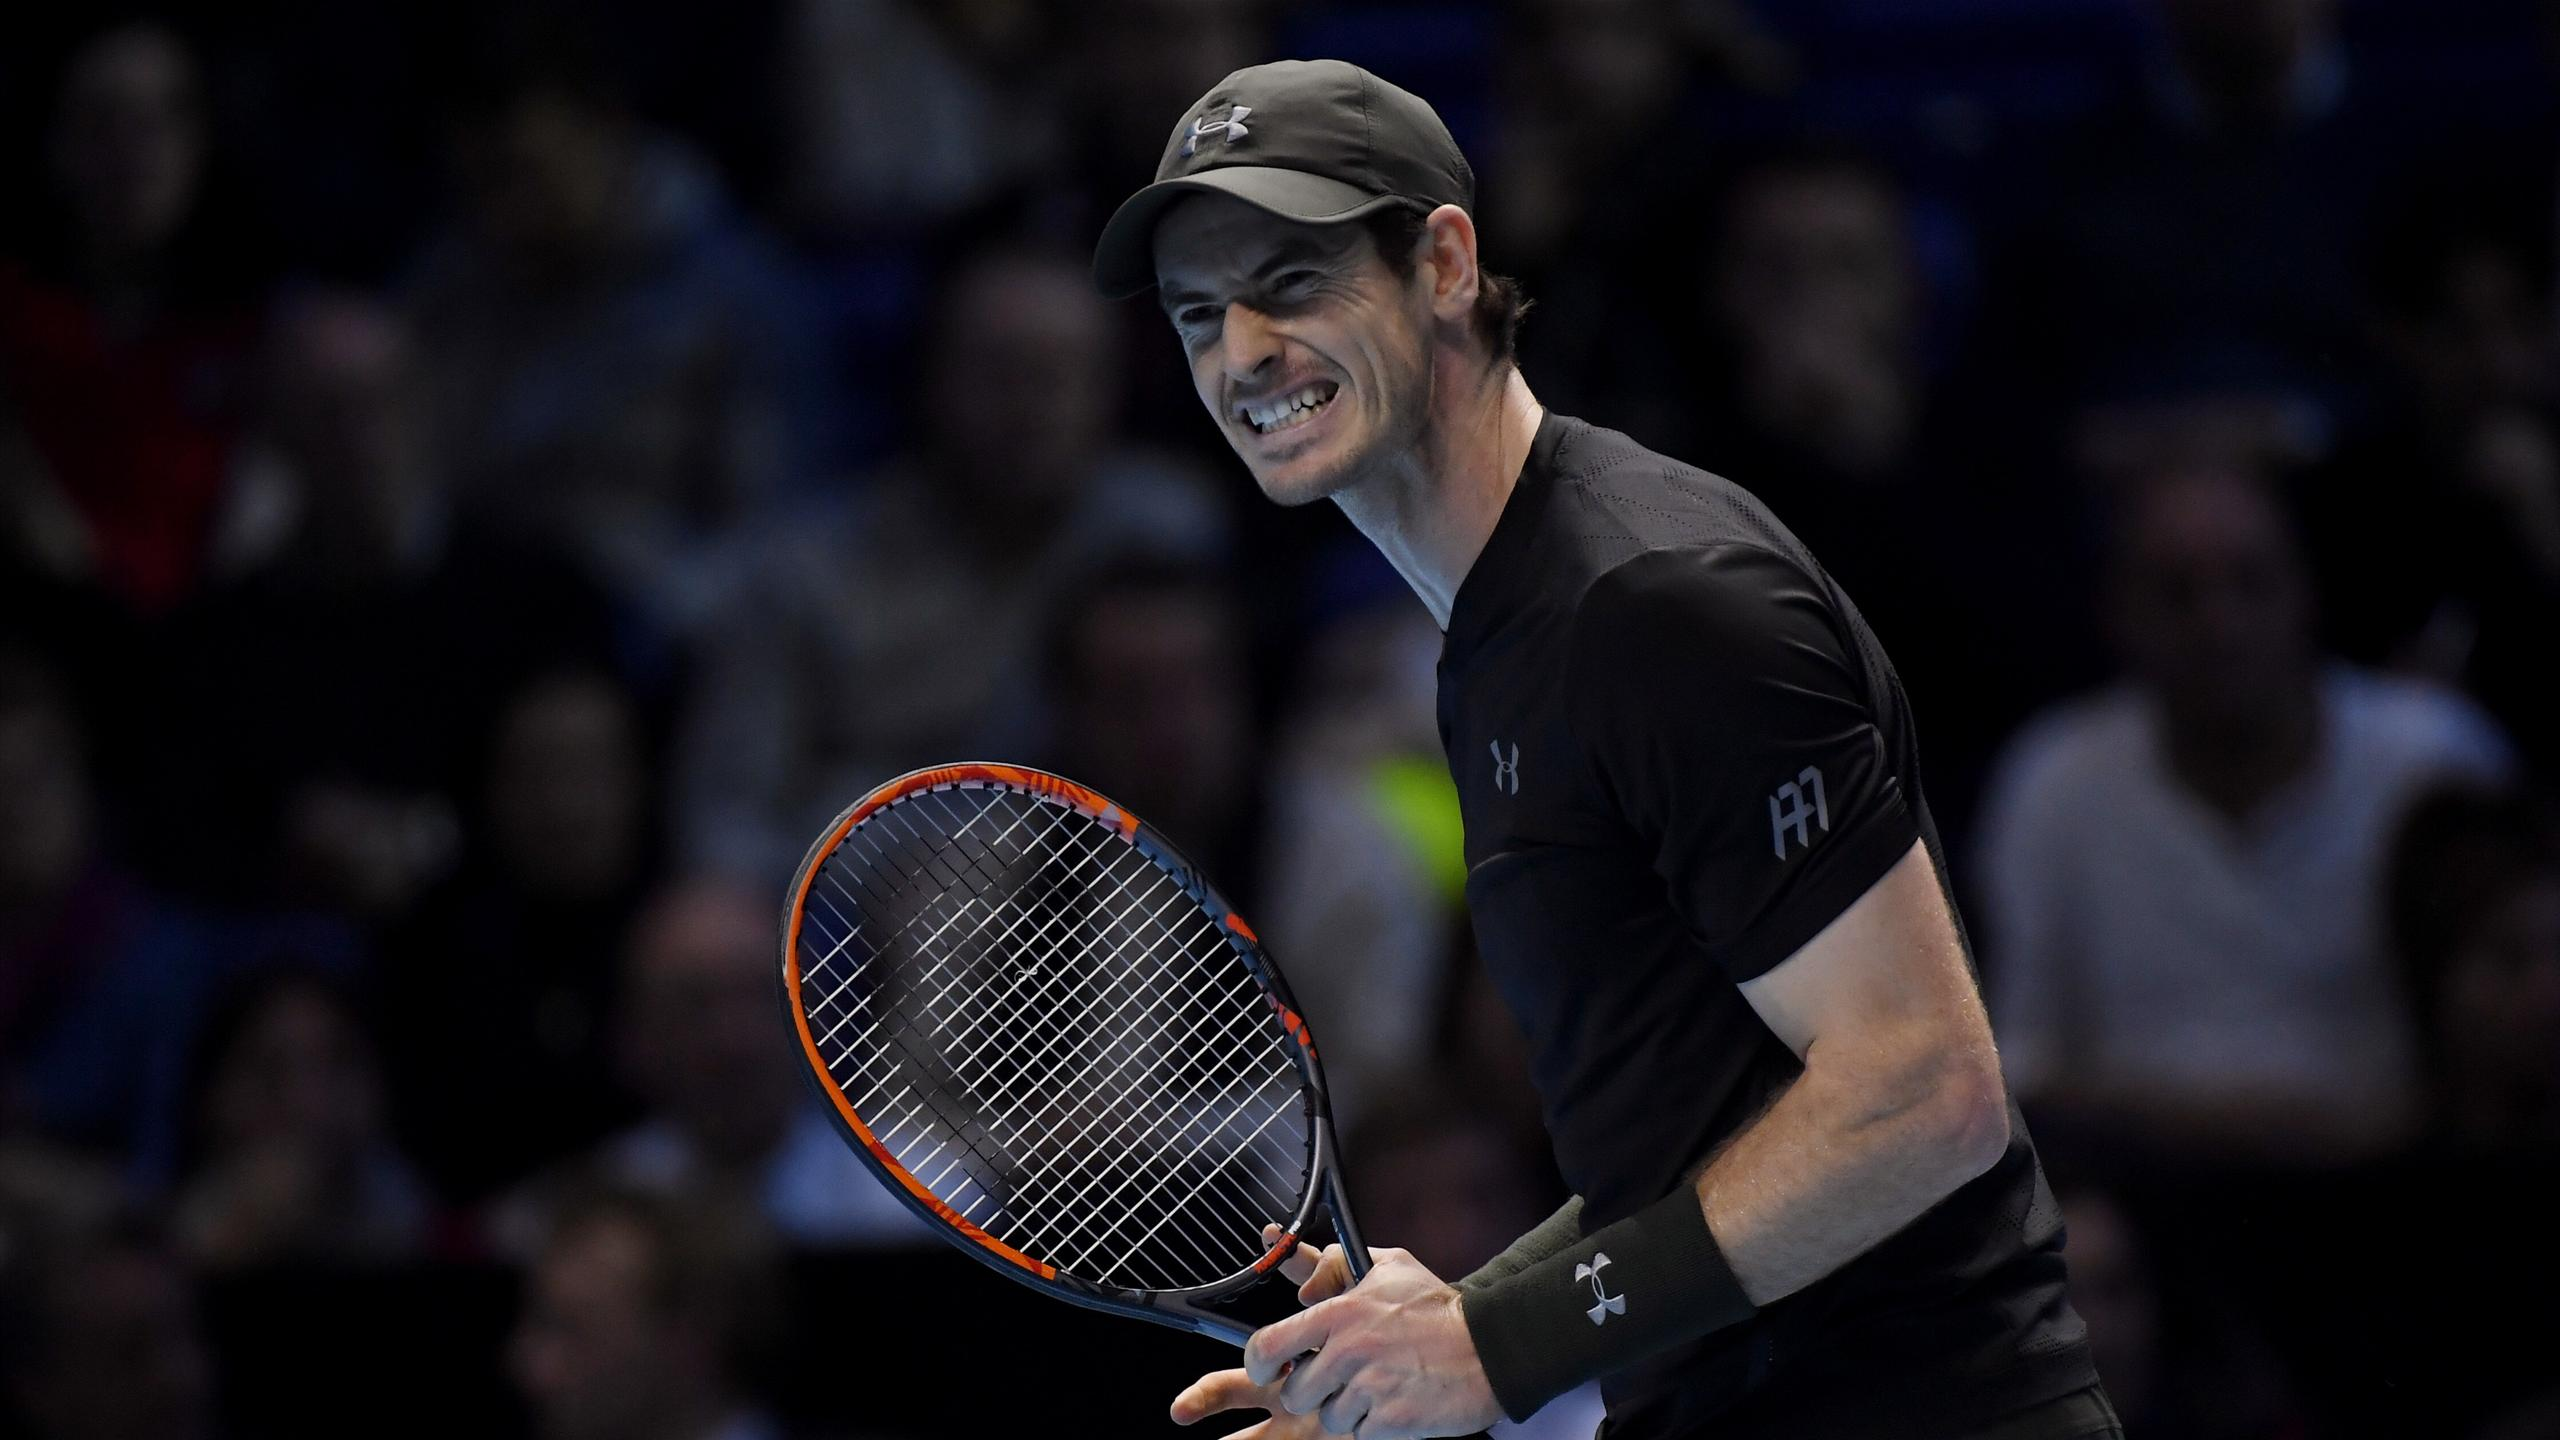 Andy Murray loses the first set to Milos Raonic at the World Tour Finals